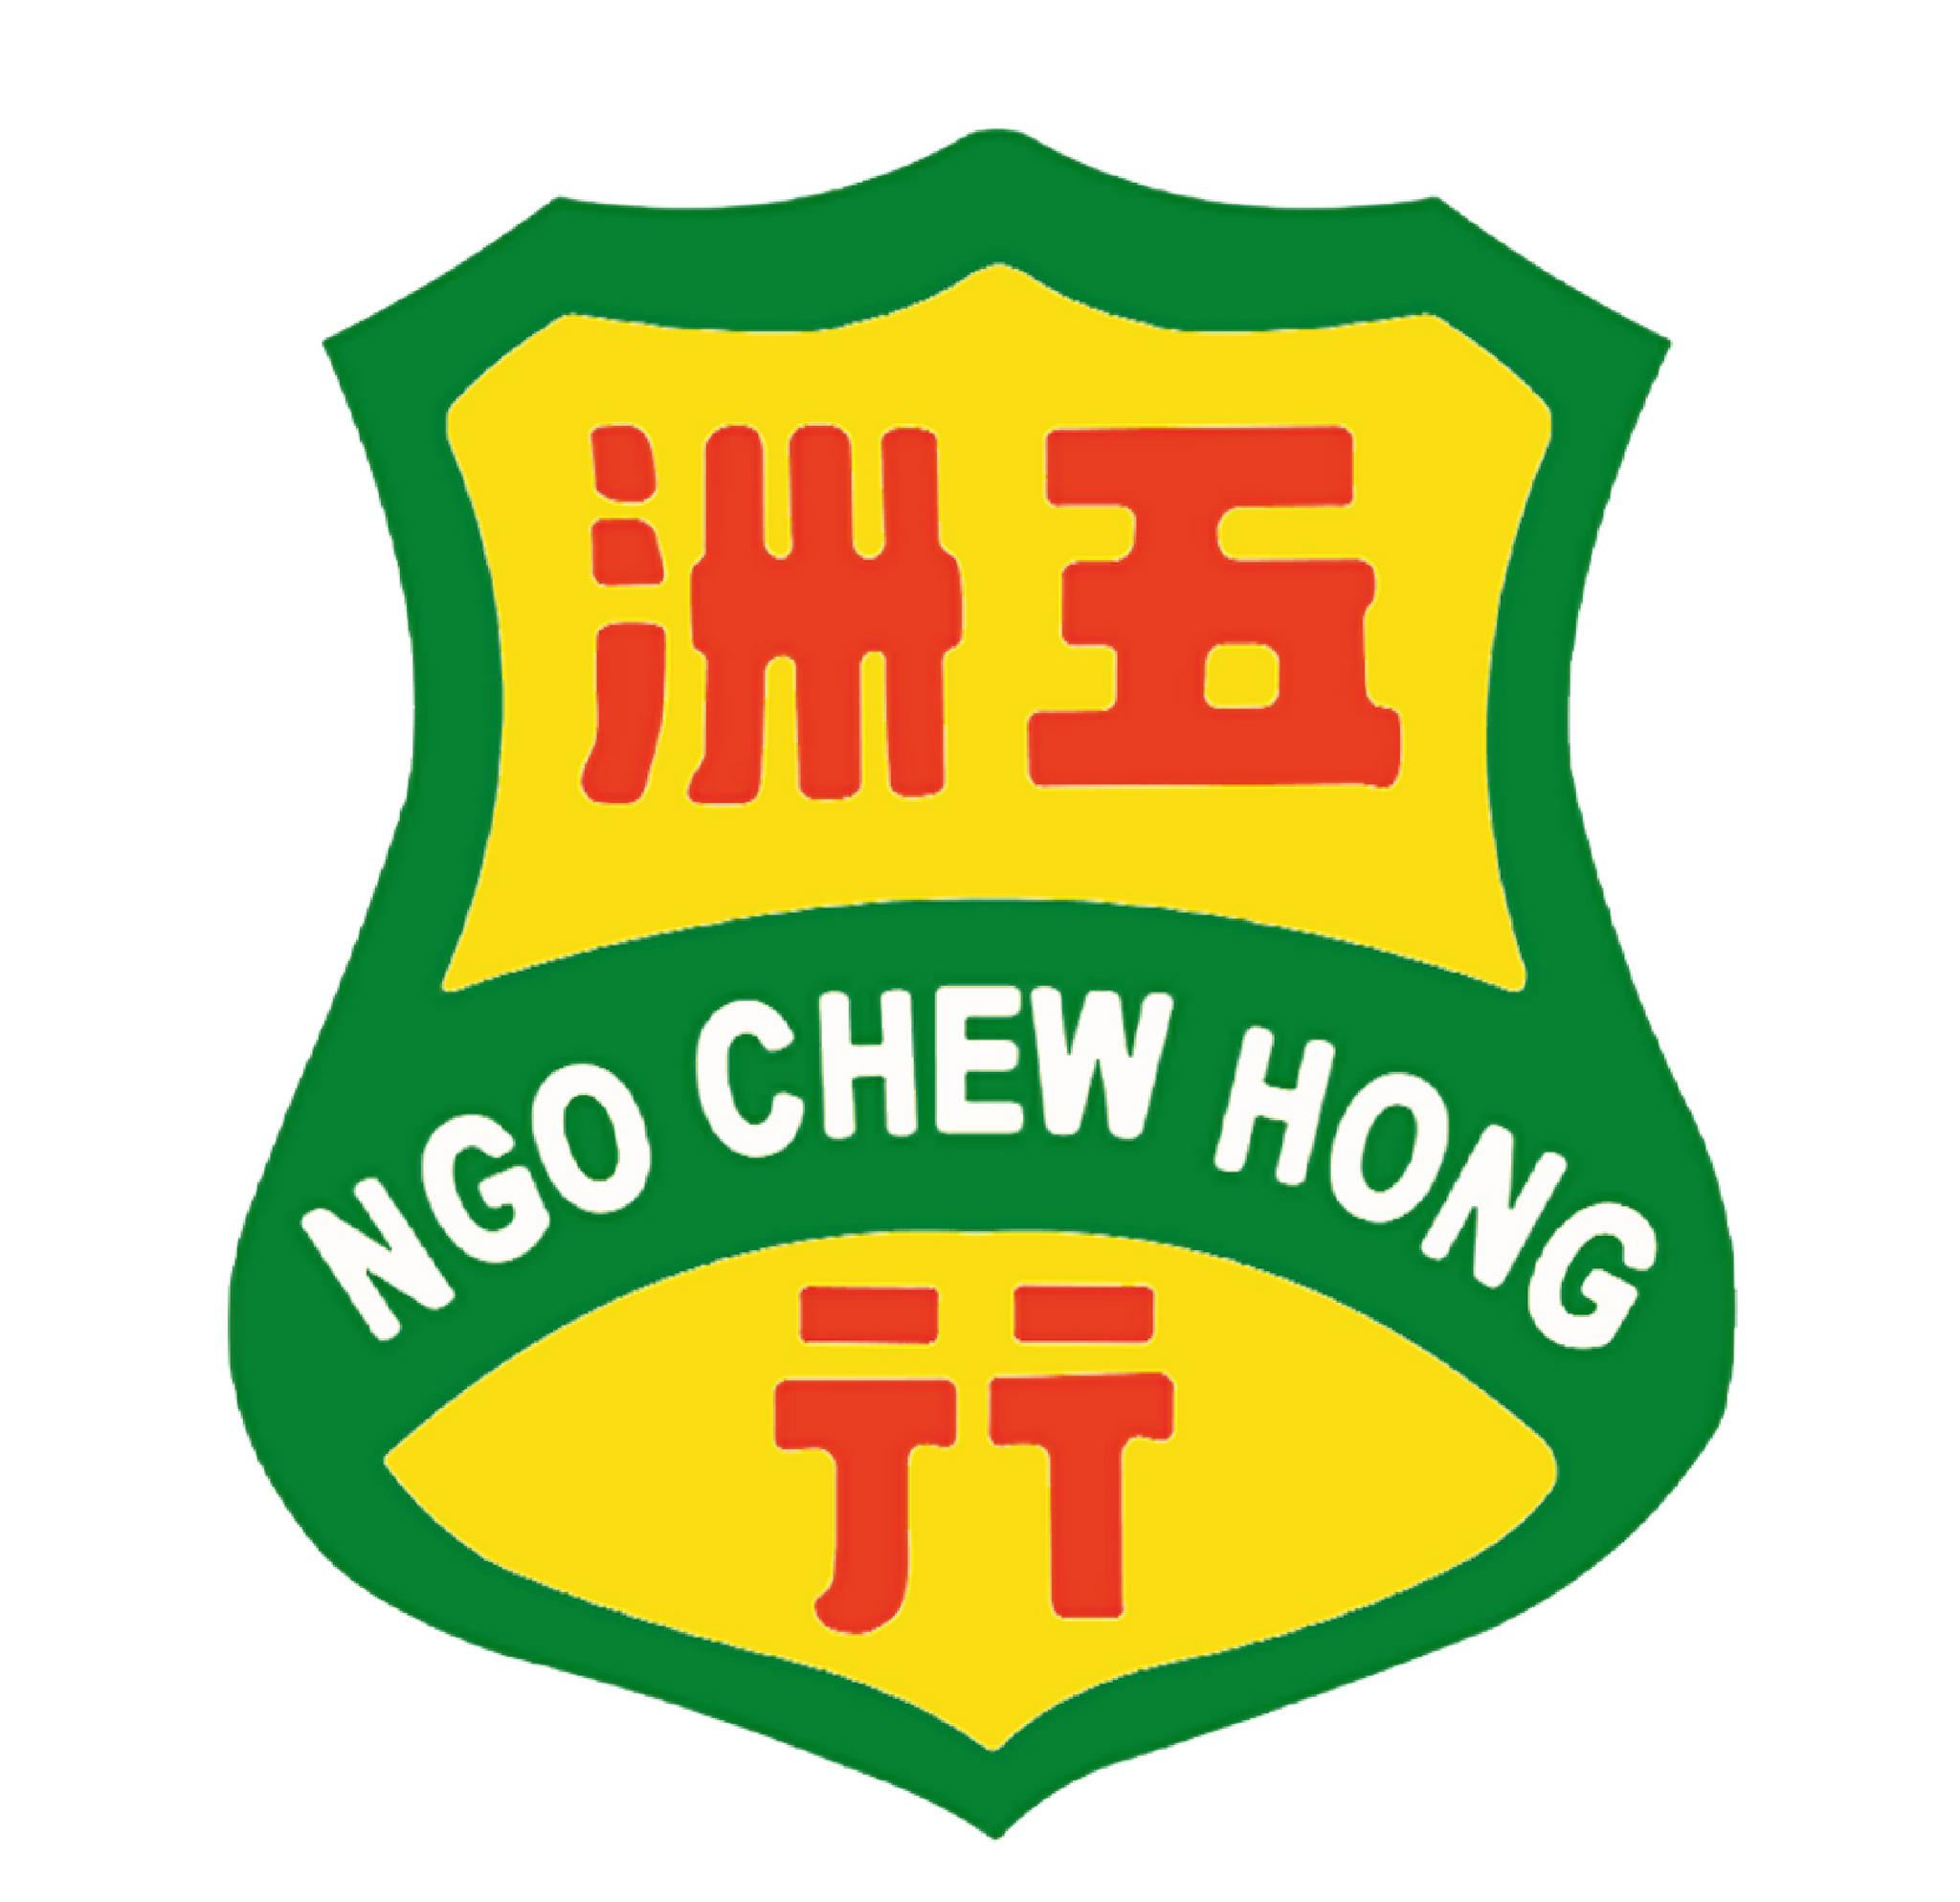 Ngo Chew Hong Edible Oil Pte.Ltd.